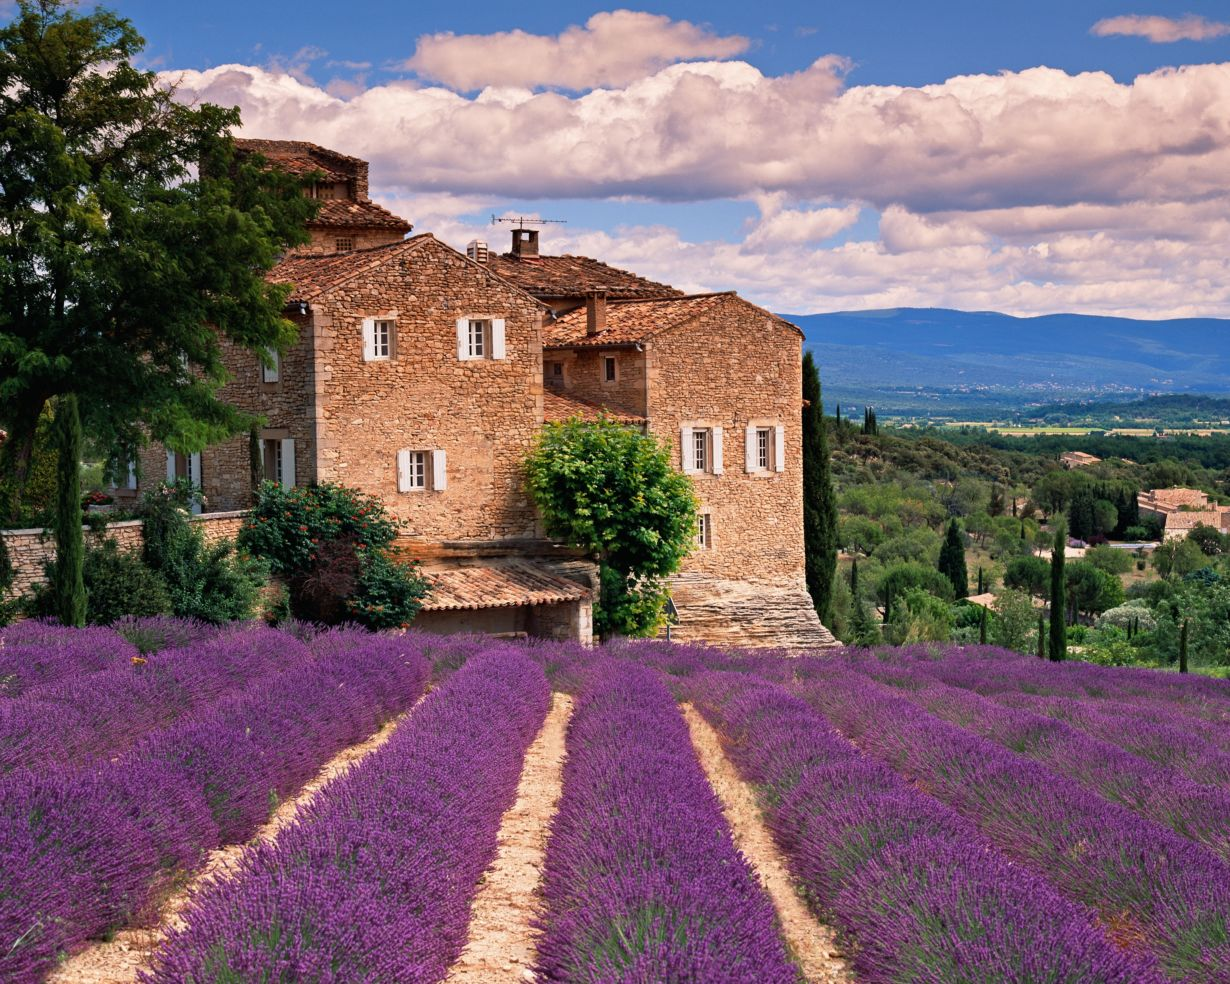 Lavender fields in Tuscany, Italy